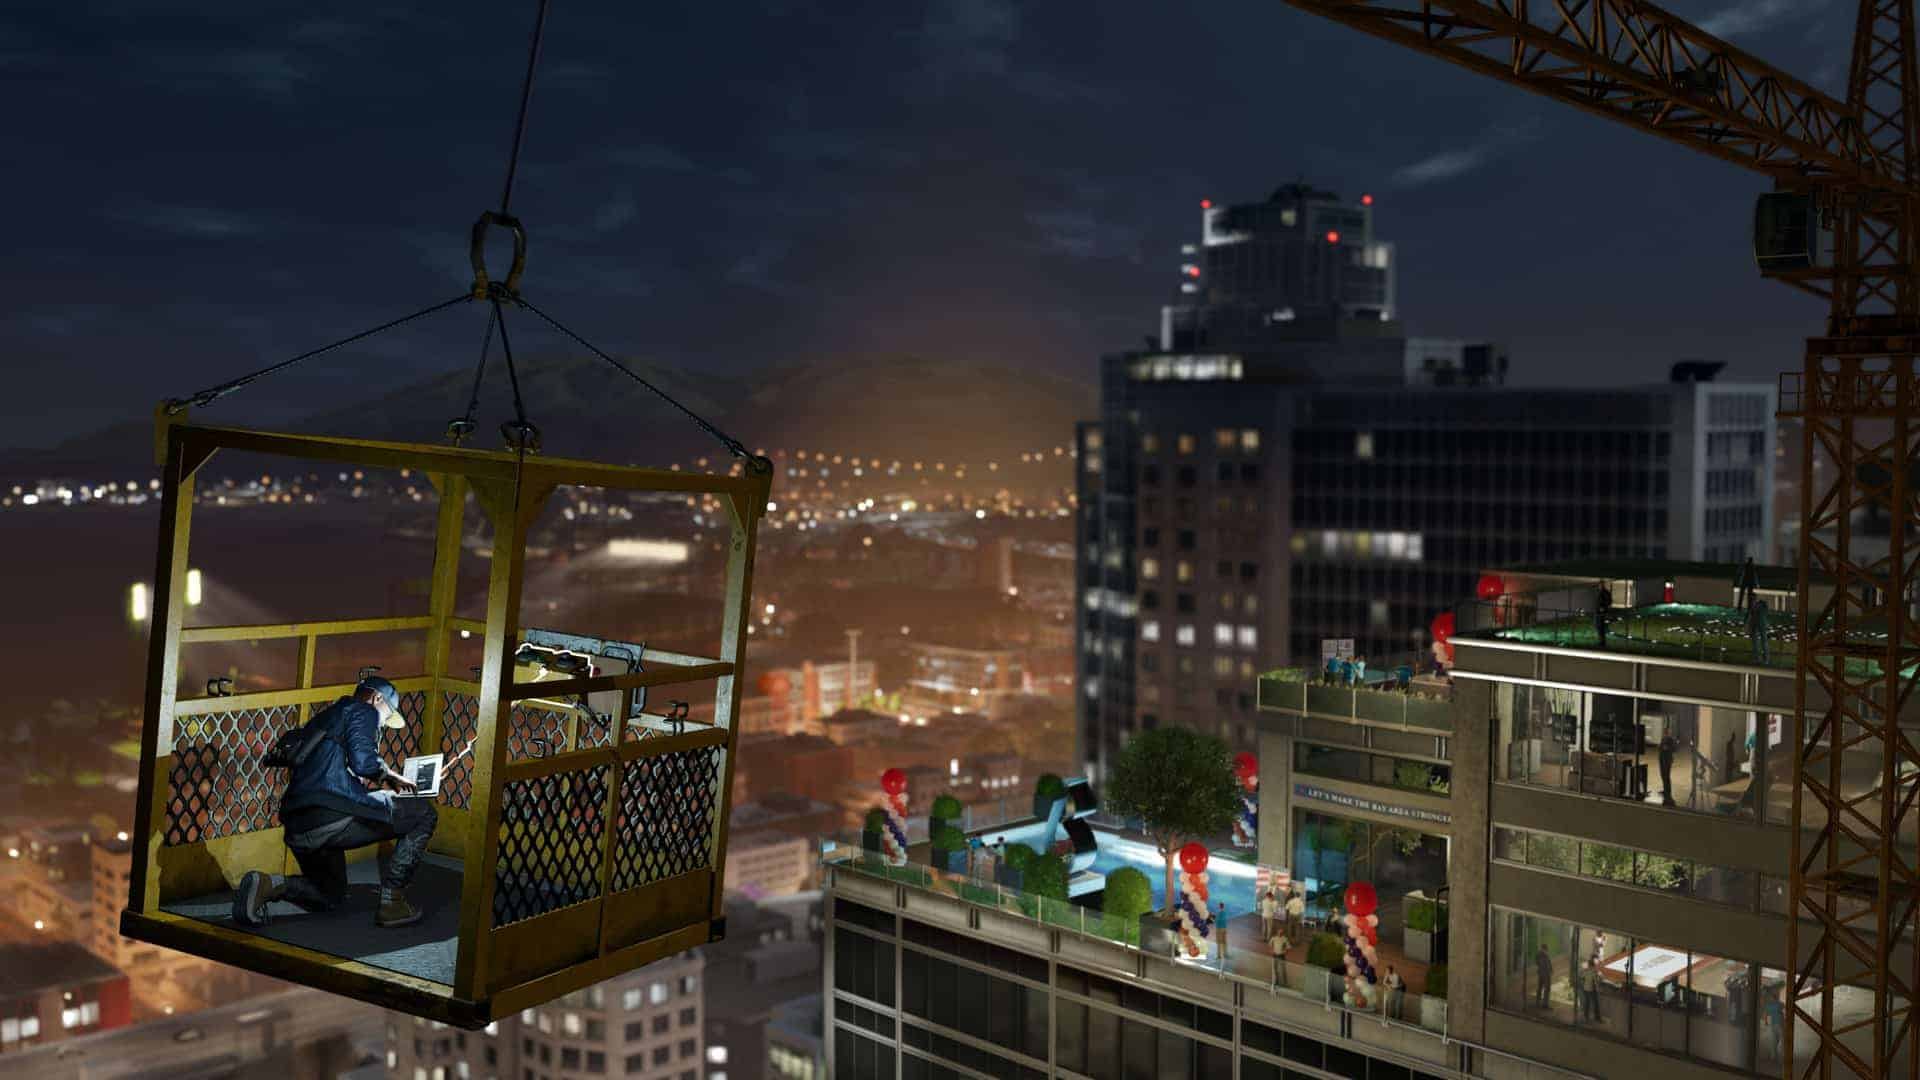 watch dogs 2 full pc game download and install free